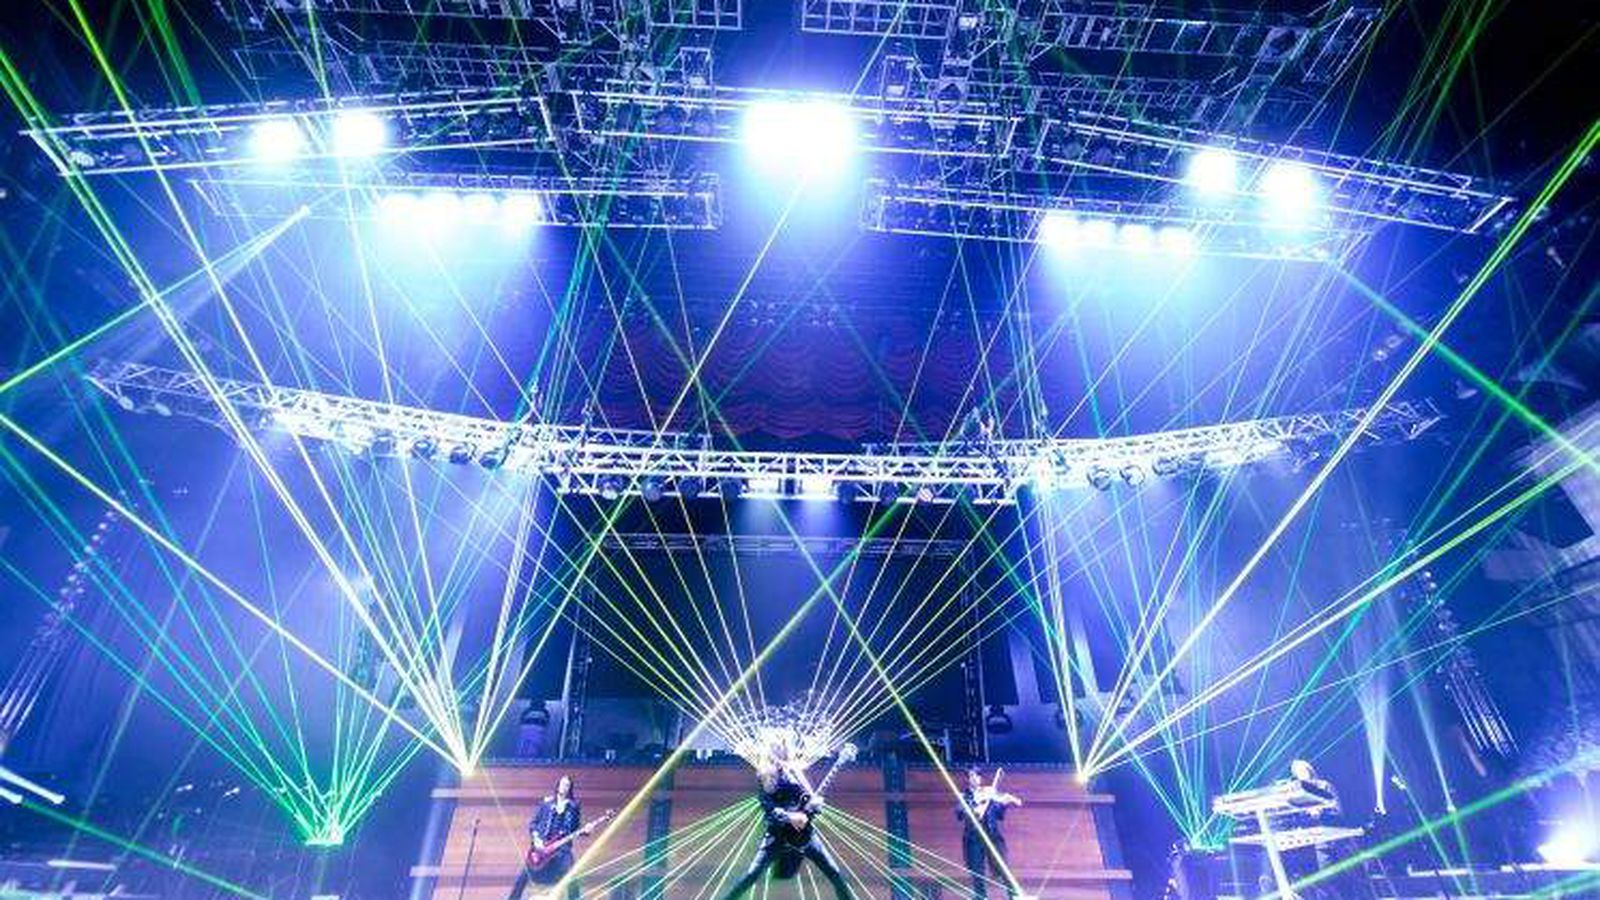 Christmas Performances 2020 Tampa Christmas tradition canceled: No Trans Siberian Orchestra tour in 2020